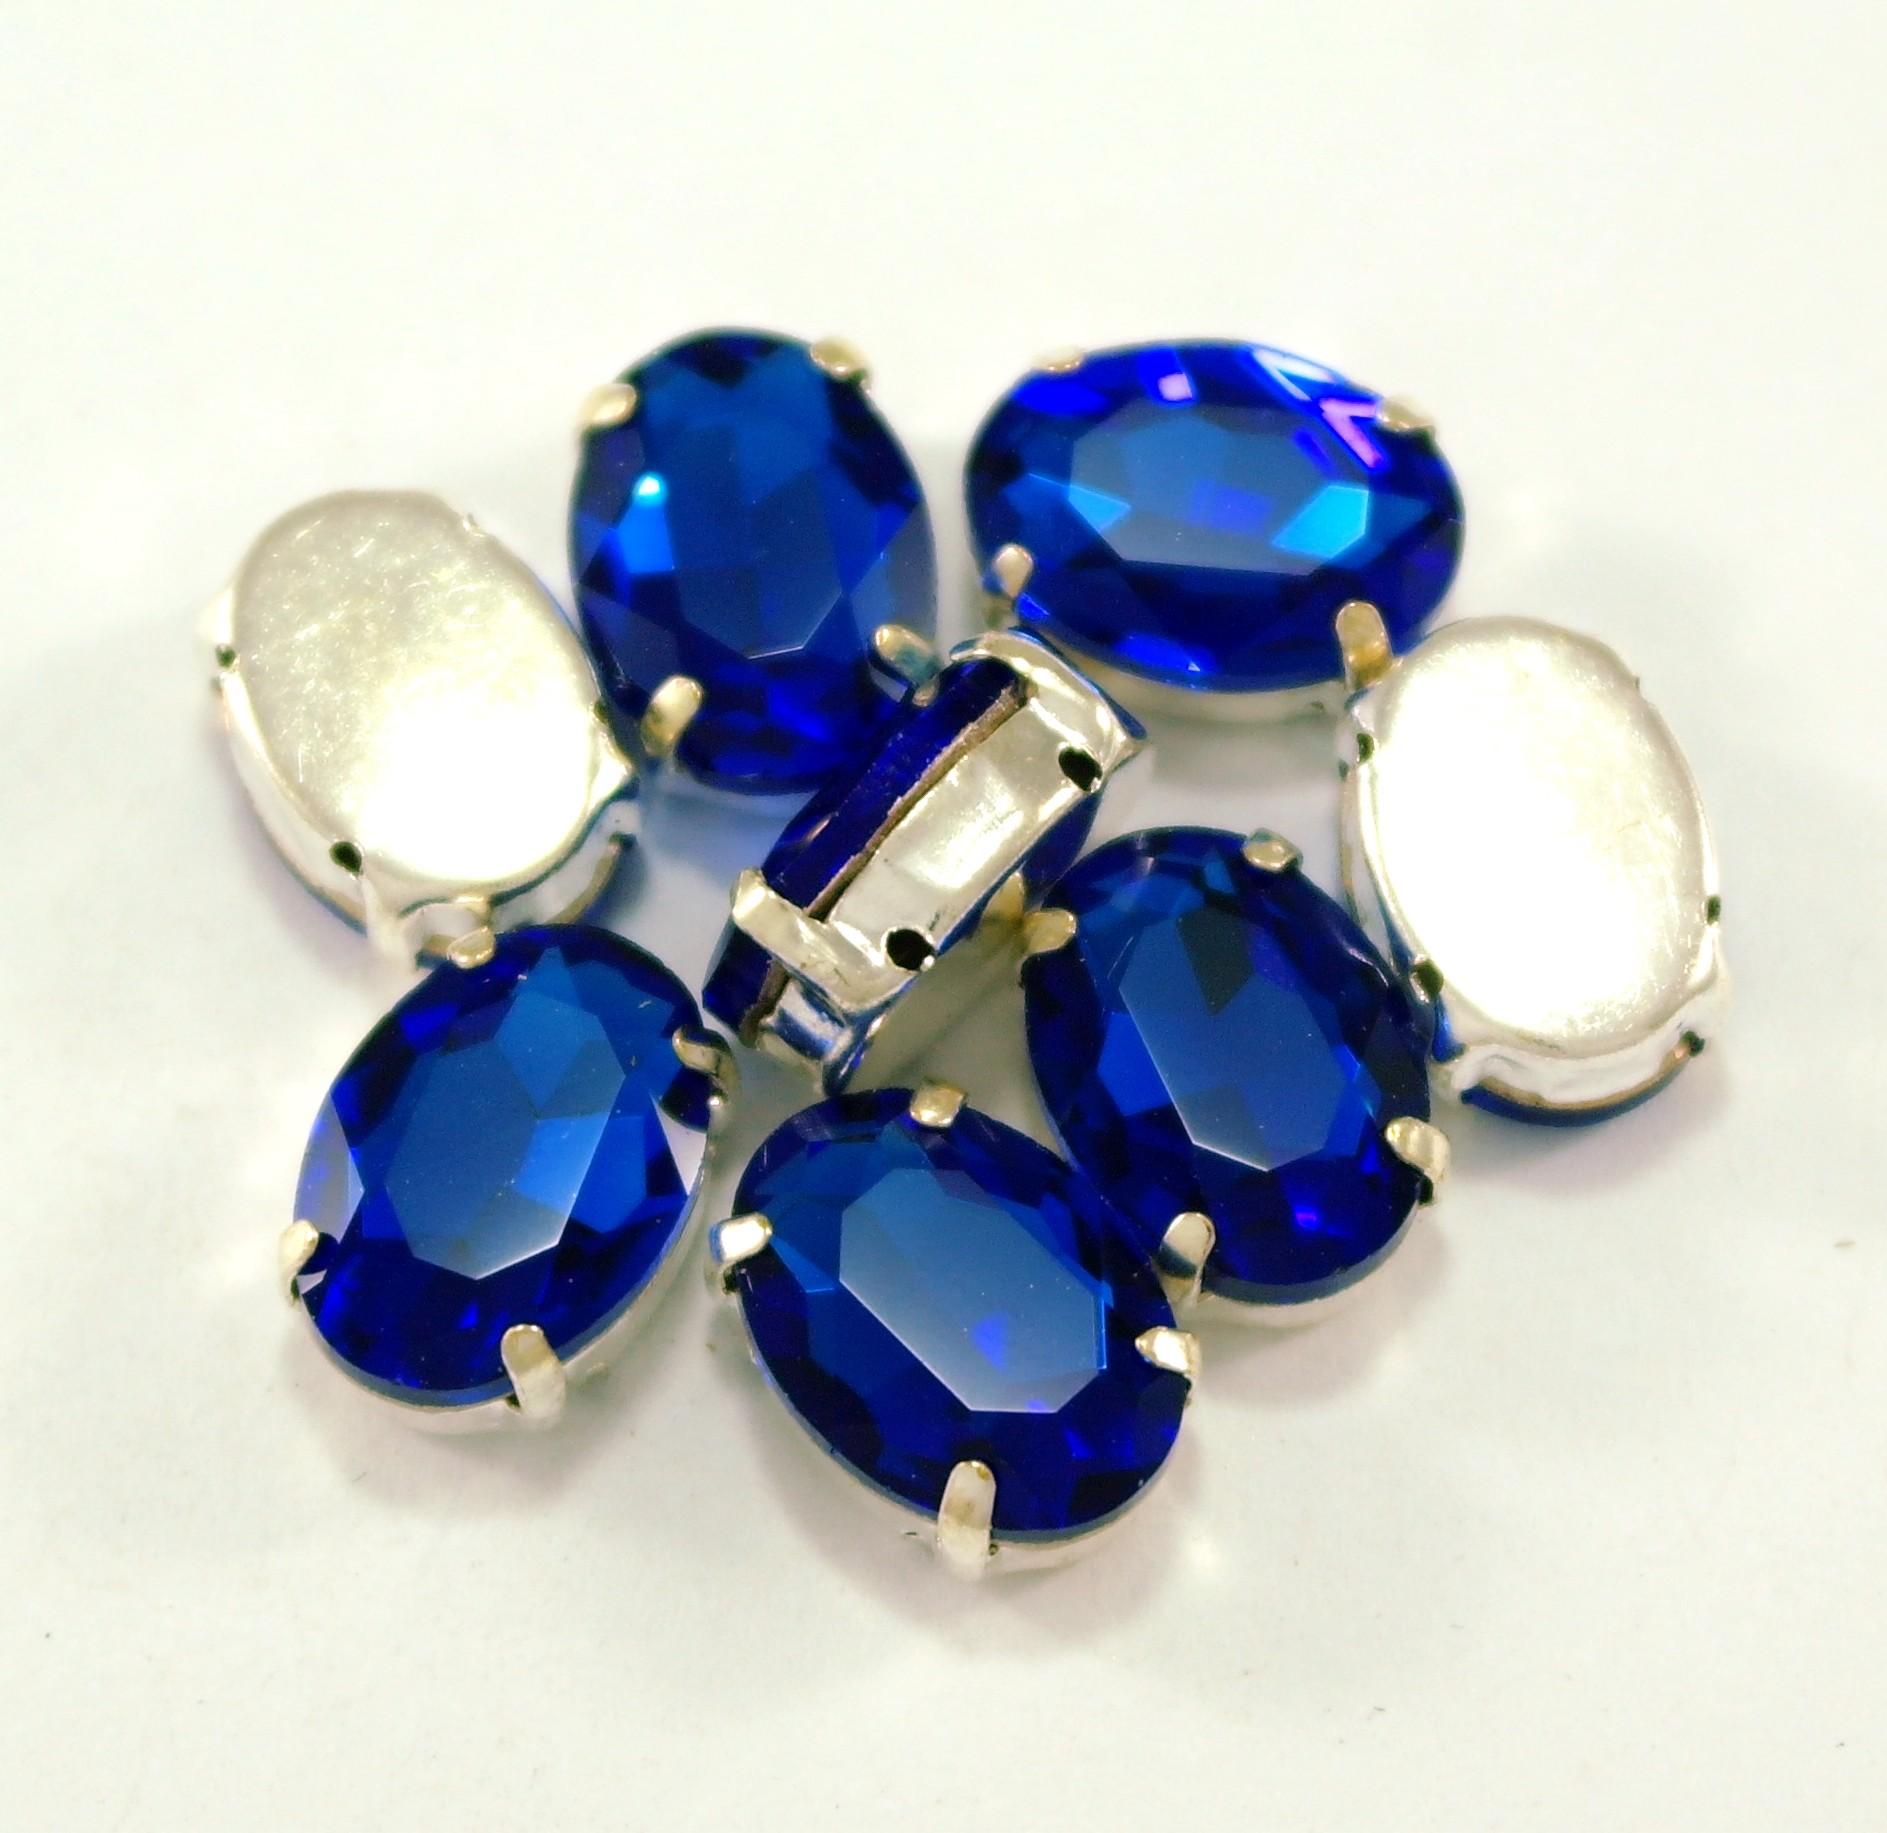 GLASS BEADS - COBALT OVAL (O4)